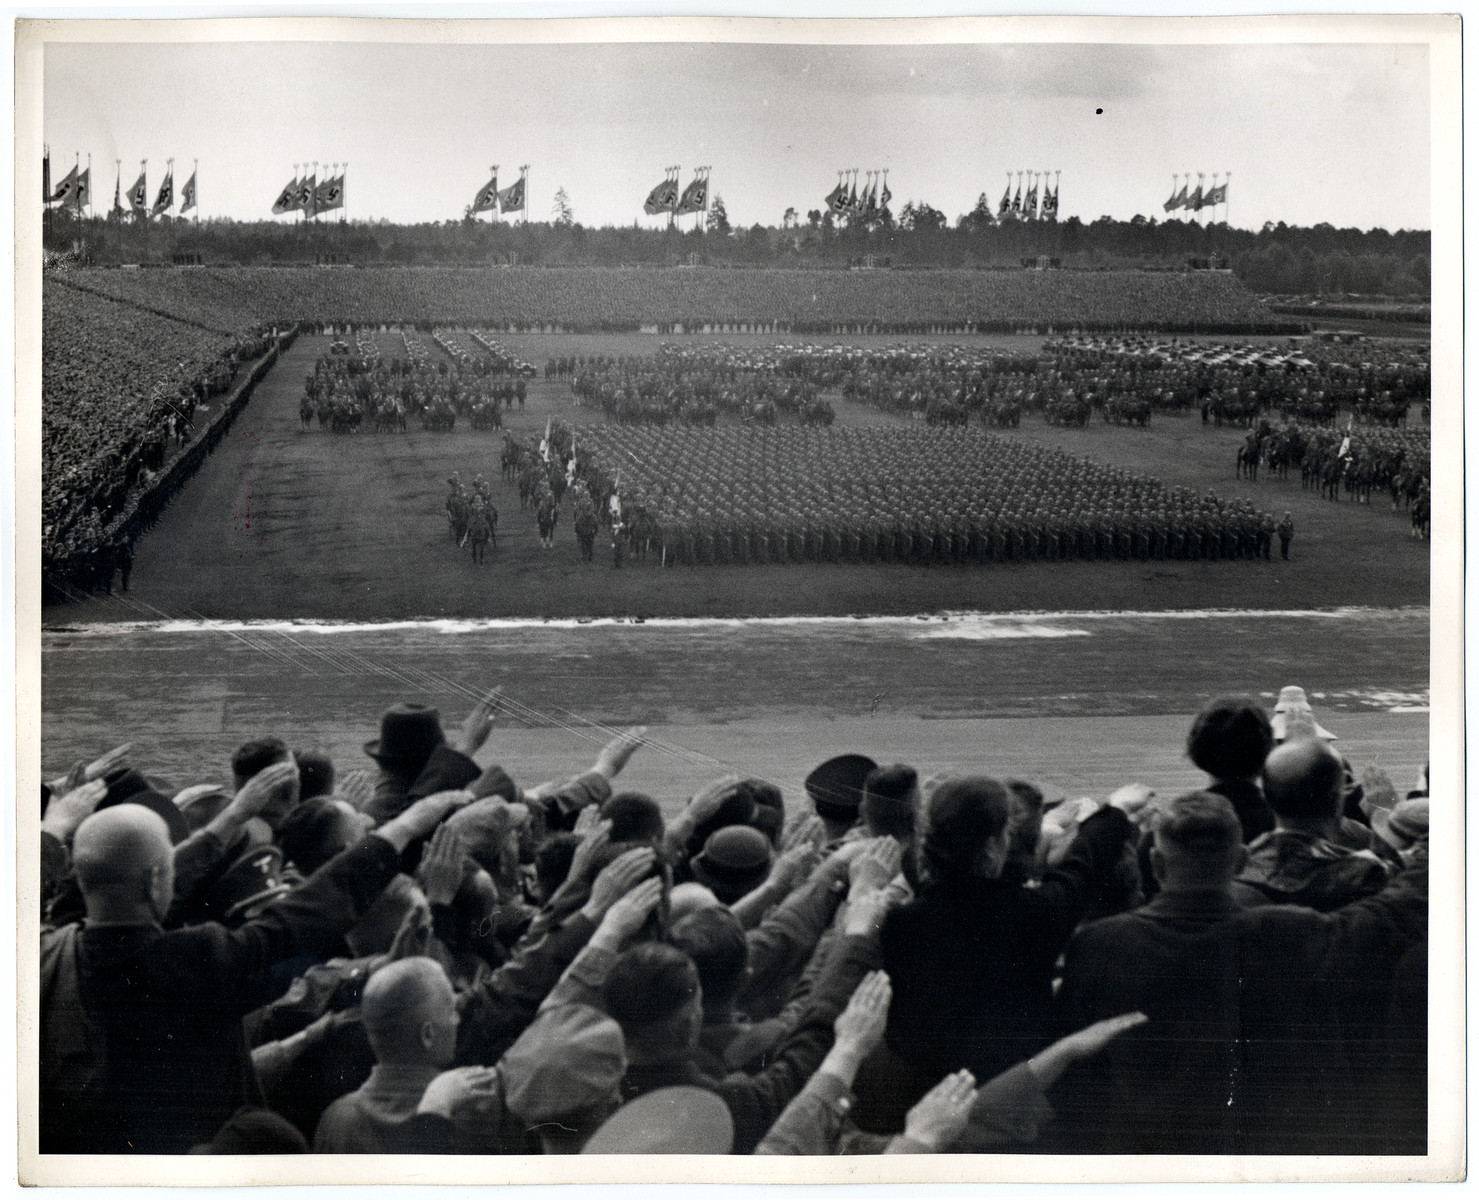 German soldiers, some on horse back, stand at attention in front of saluting spectators during war games at the Nazi Party Congress in Nuremberg.